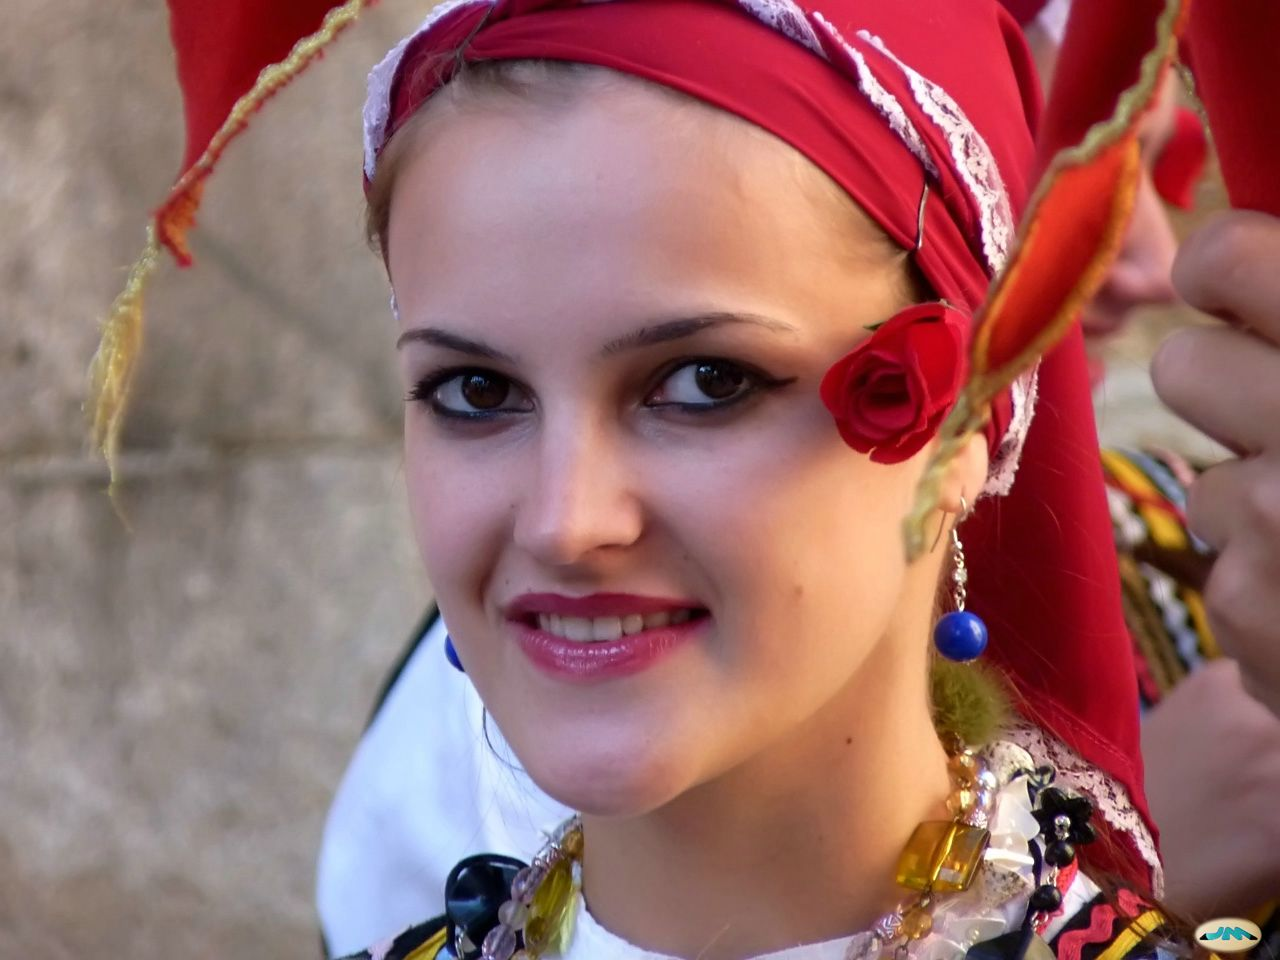 macedonia jewish girl personals Strumica, macedonia singles, dating, personal ads, profiles, love & personals all for free find singles and your perfect match through onelovenetcom, your free.